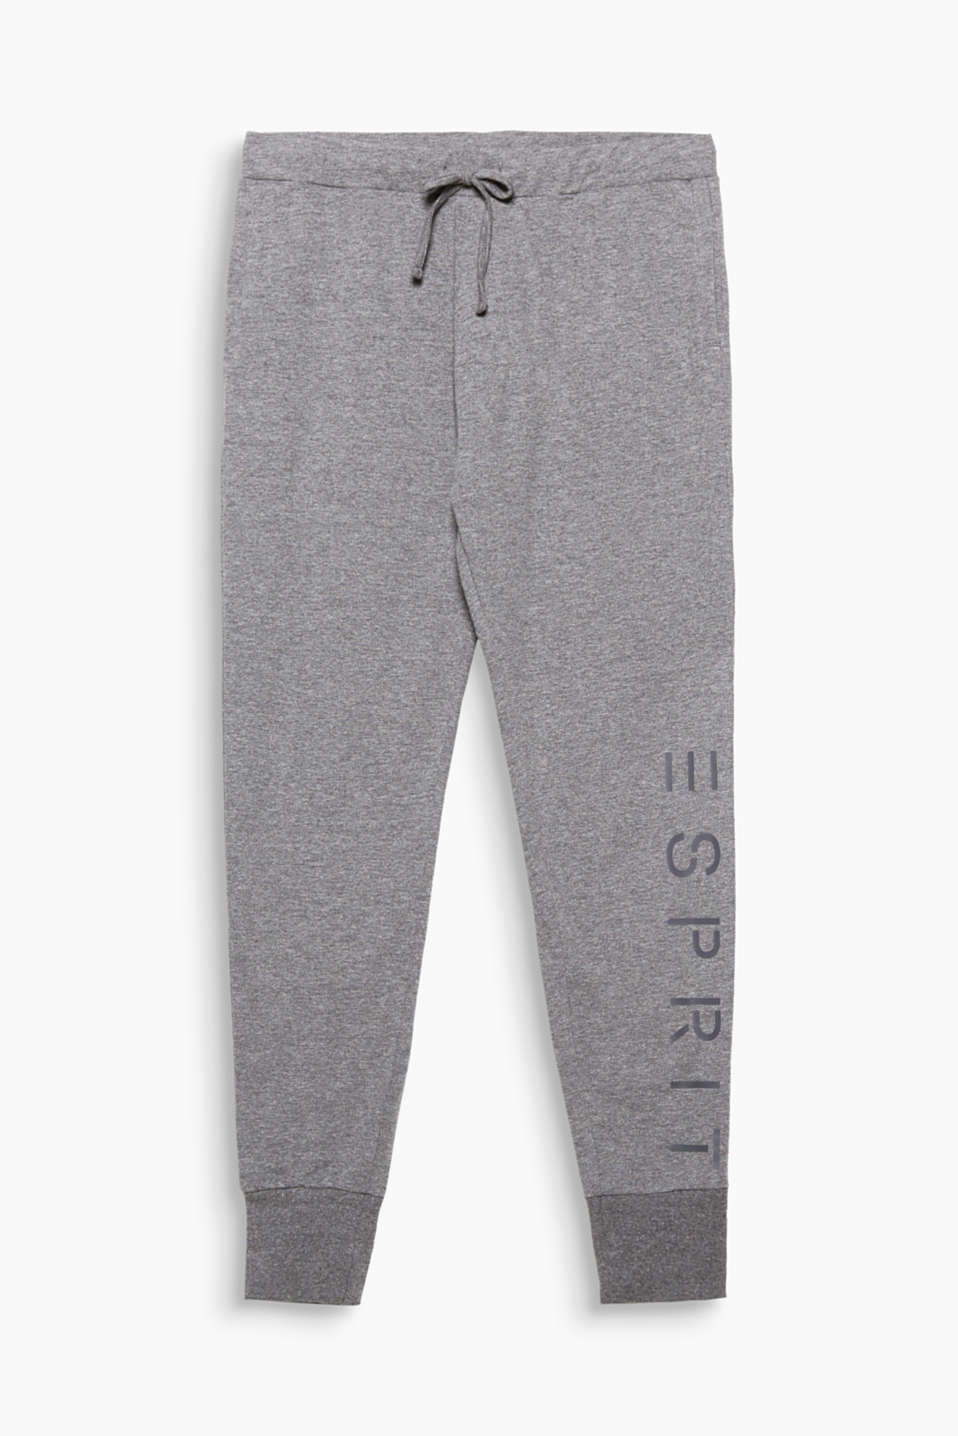 Make yourself comfortable with these lightweight jersey trousers in a modern, melange look with an authentic logo print!